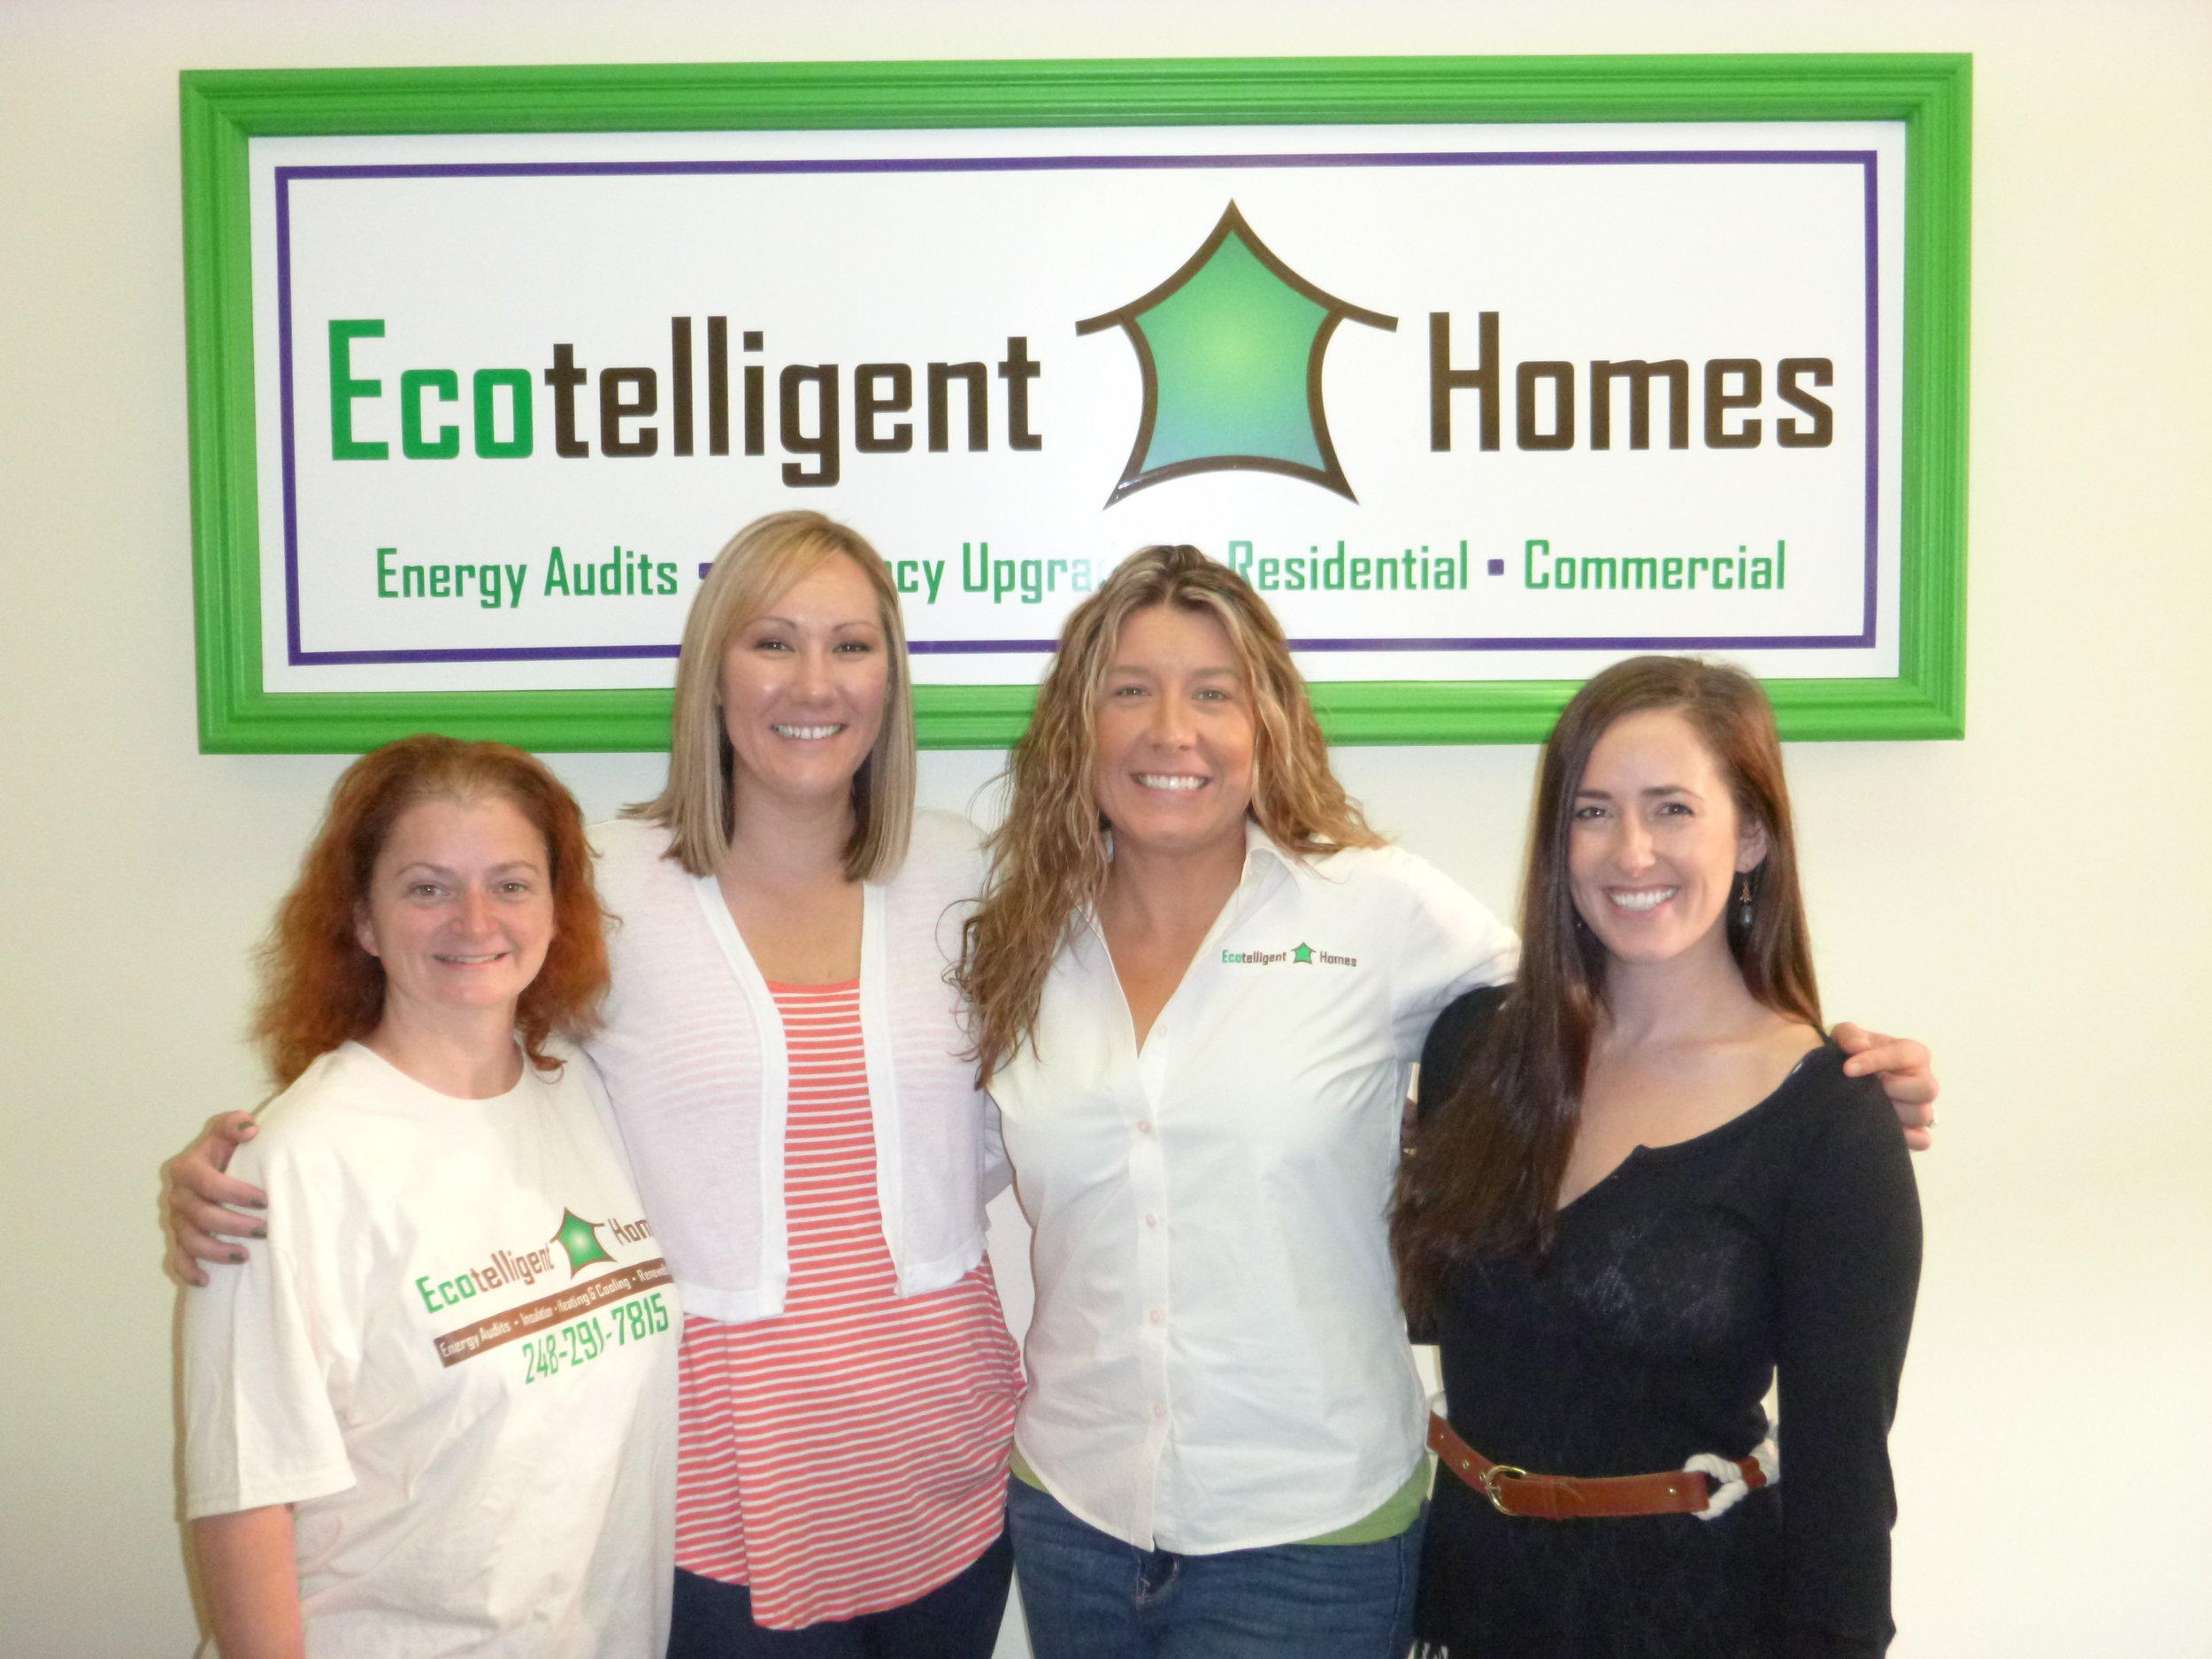 The women of Ecotelligent Homes, from left to right: Fay Cantwell, Shelly Hein, Amanda Godward, Jamie Dusina.